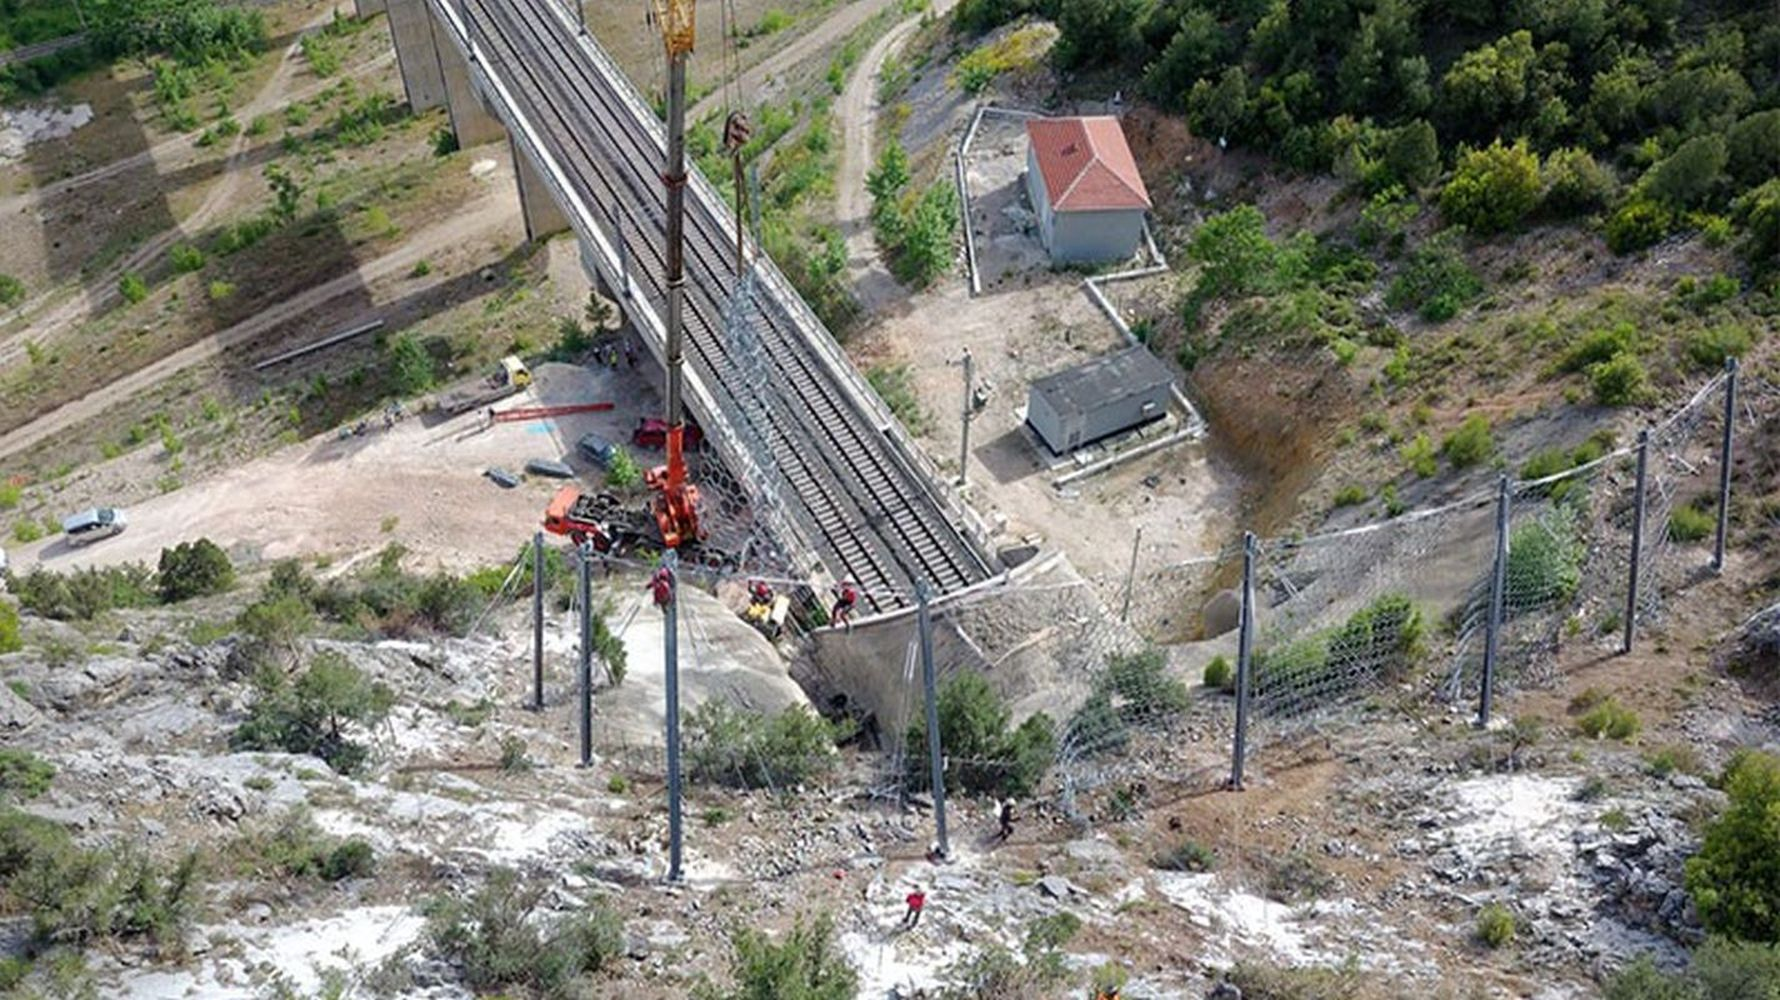 Construction of rock holding steel barrier on yht line